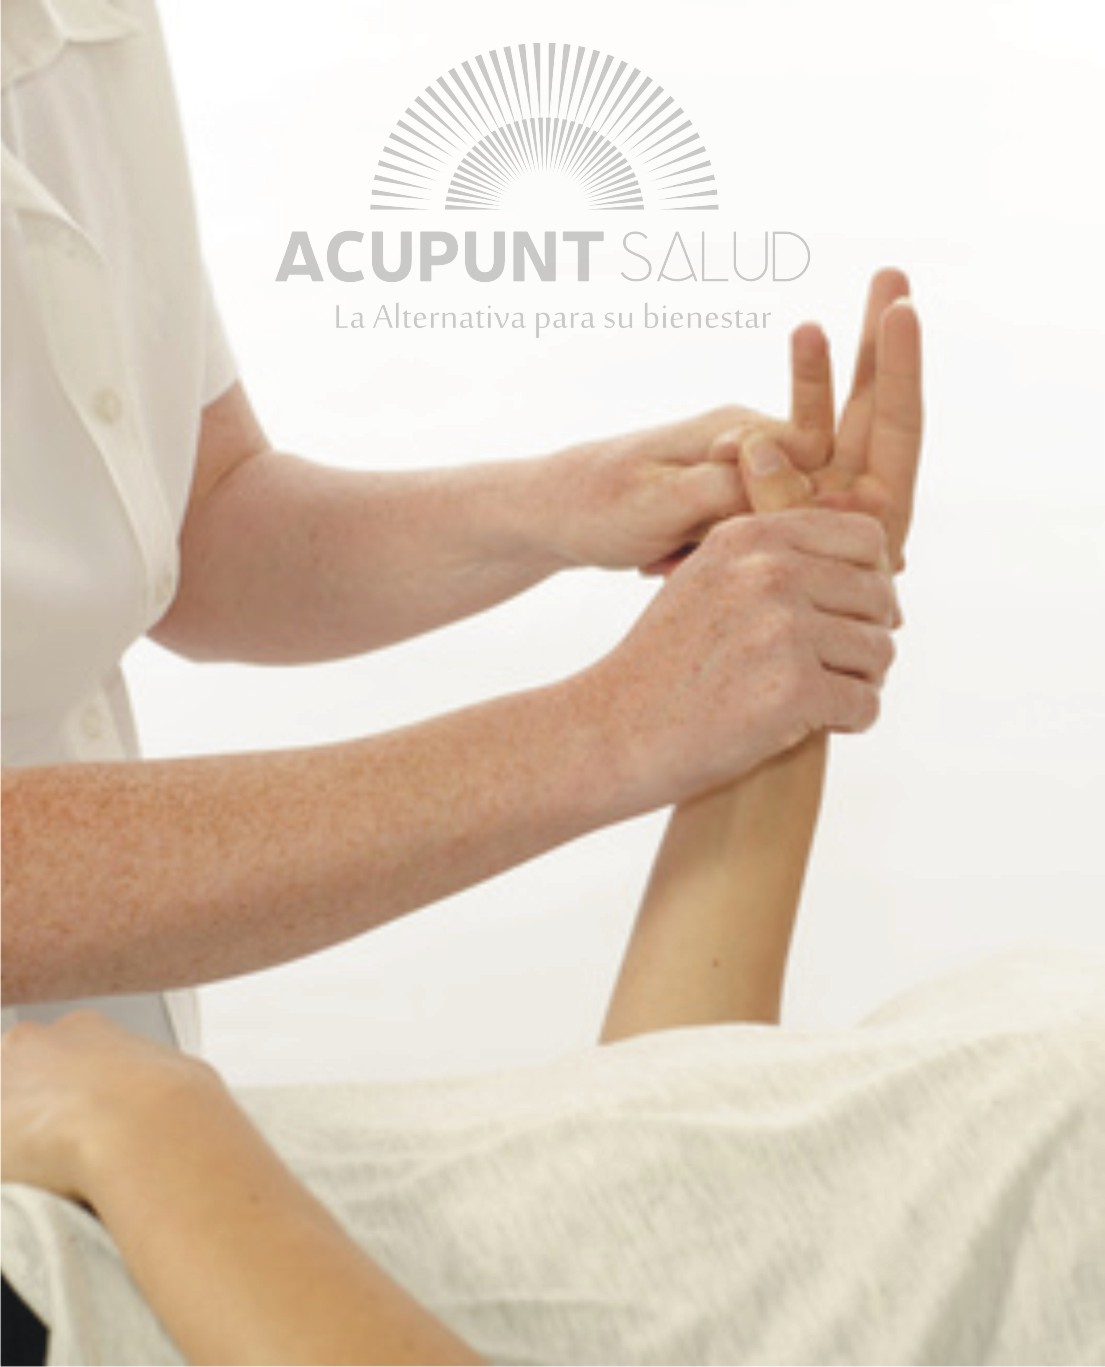 test muscular_acupuntsalud